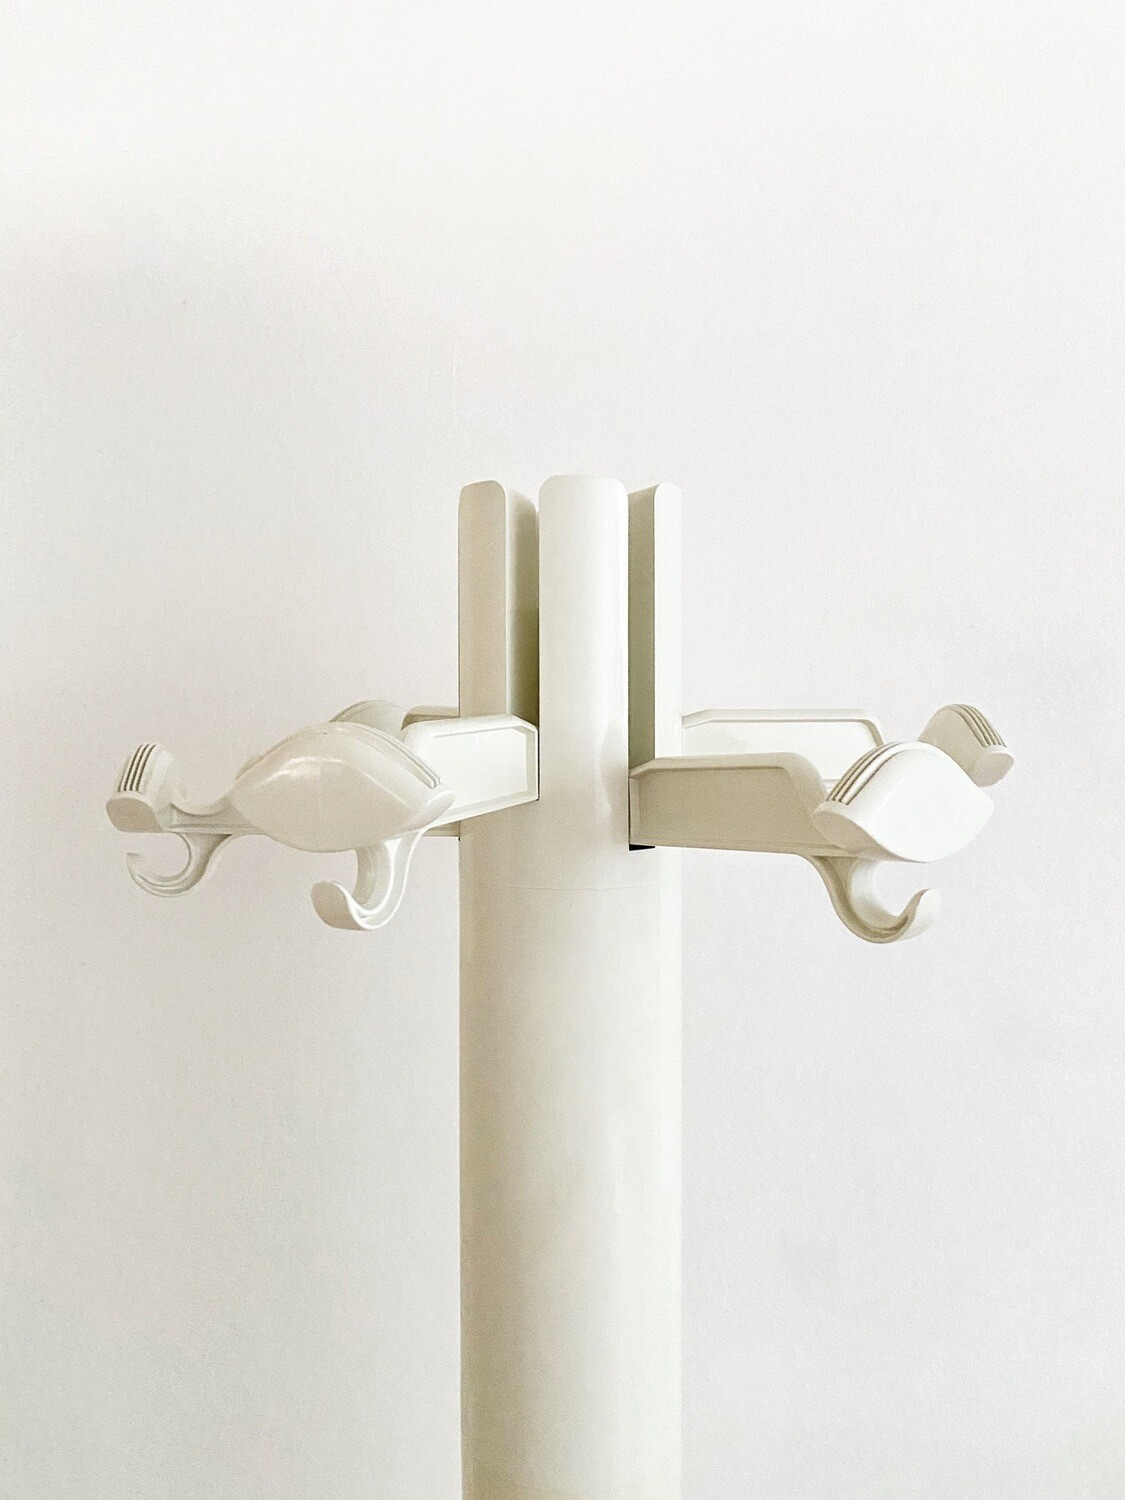 Clothes hanger Plant by Giancarlo Piretti for Anonima Castelli